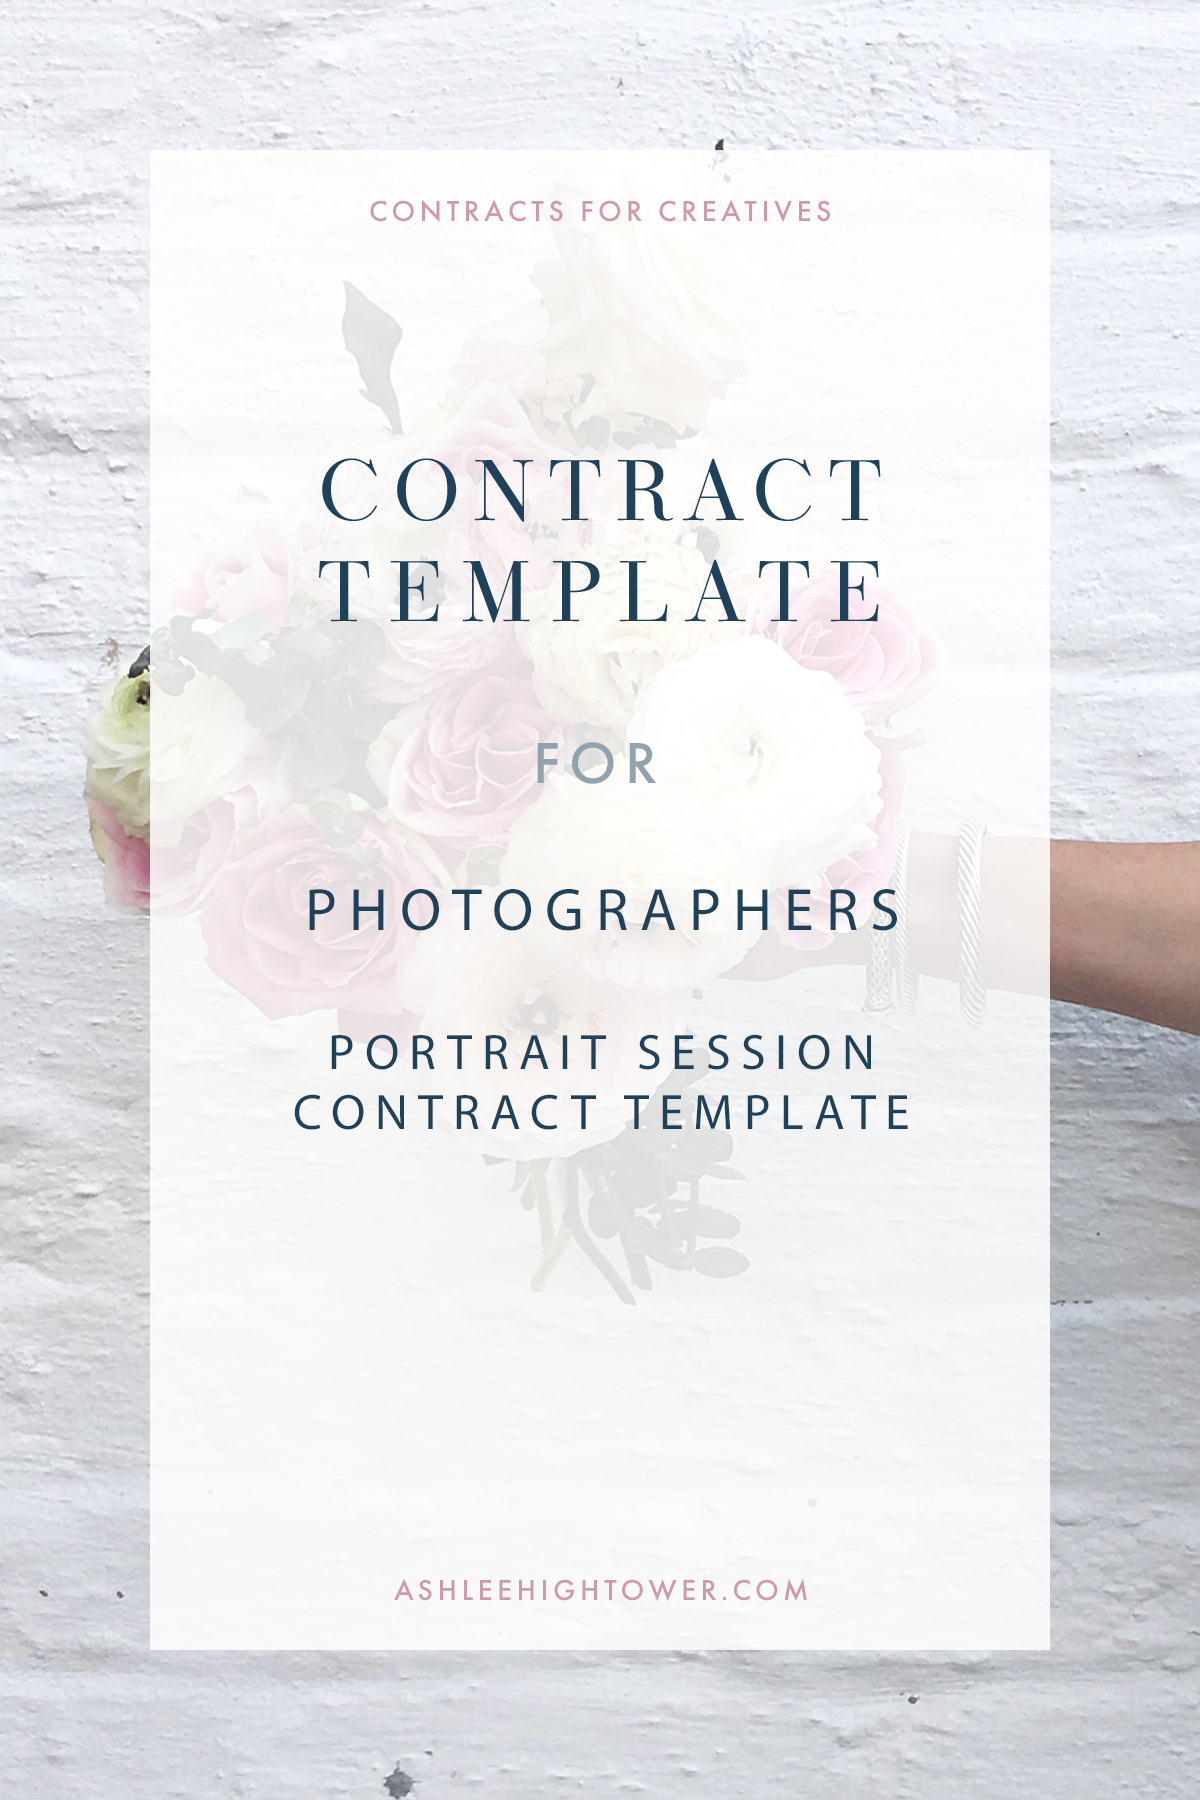 Portrait Session Contract Template | Contracts for Creatives